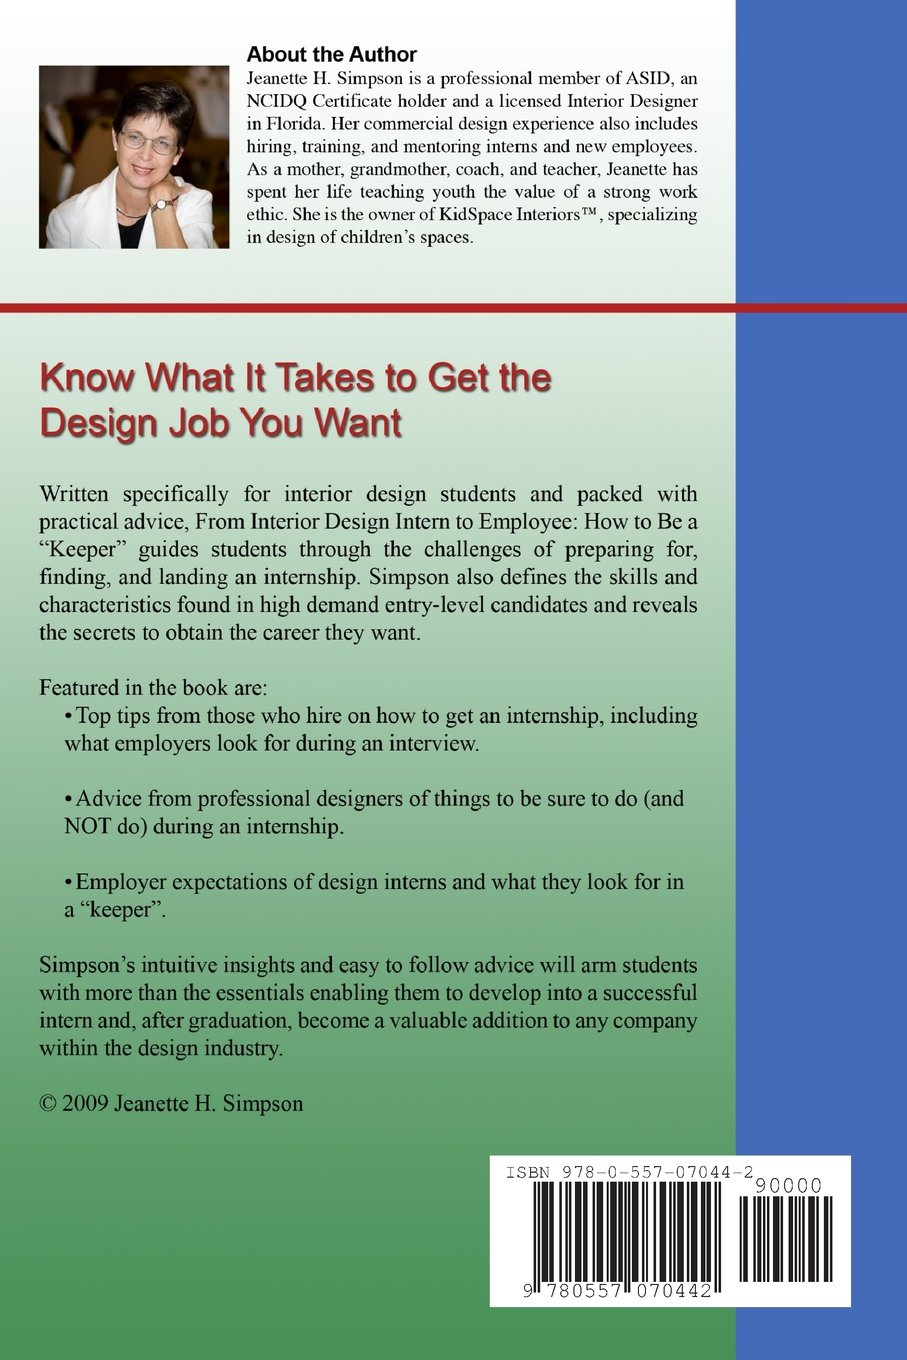 From Interior Design Intern To Employee: How To Be A Keeper (Including Tips  From Those Who Hire): Asid, Jeanette H. Simpson: 9780557070442: Amazon.com:  ...